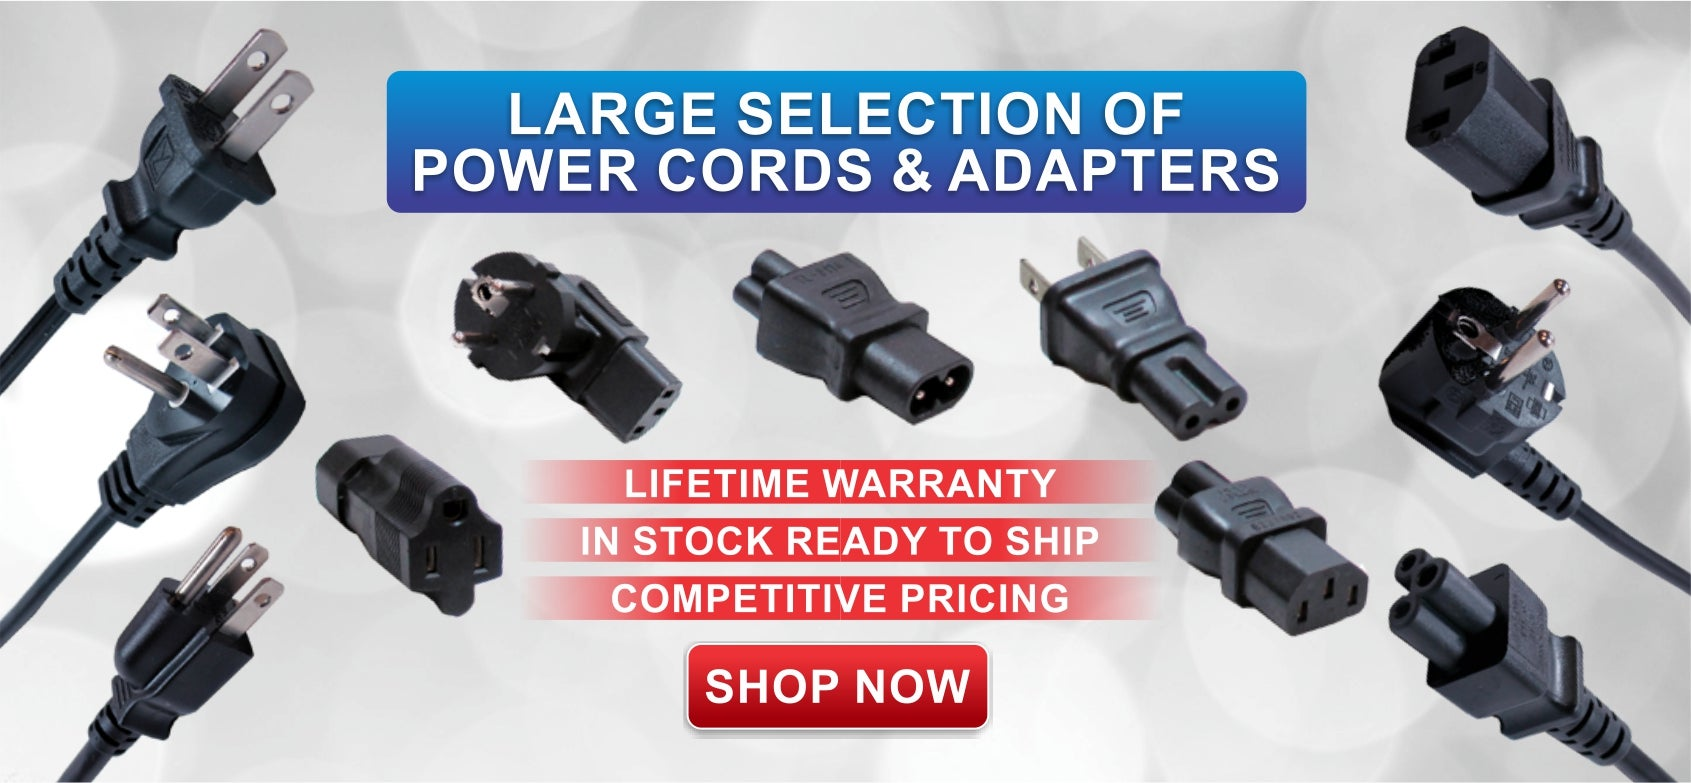 large selection of power cords and adapter